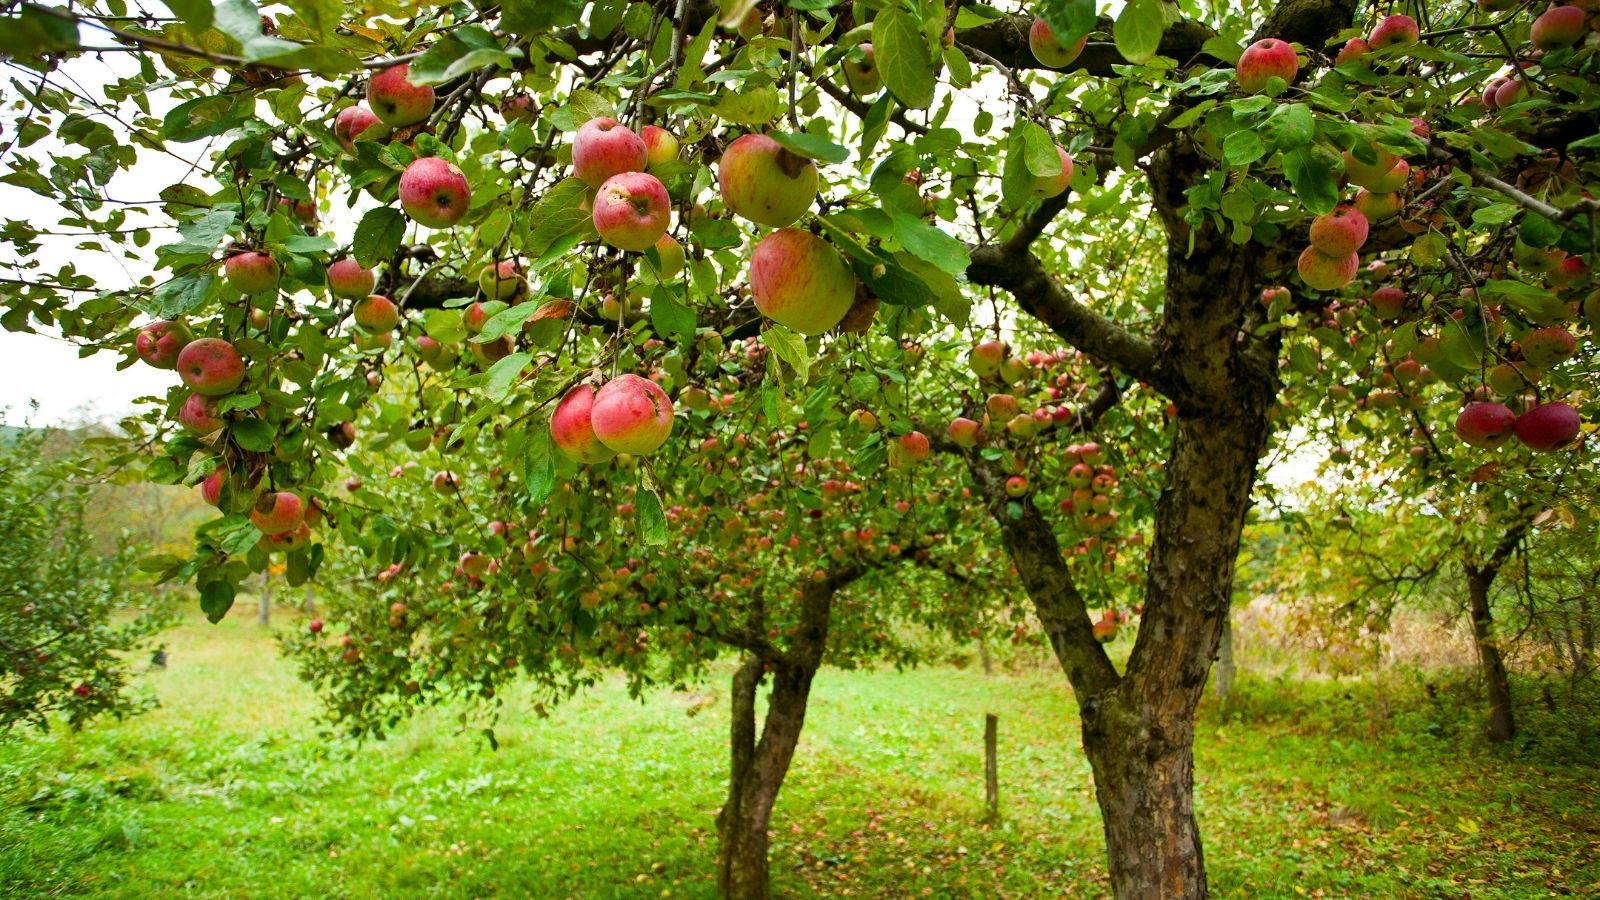 Two apple trees fruiting with green grass